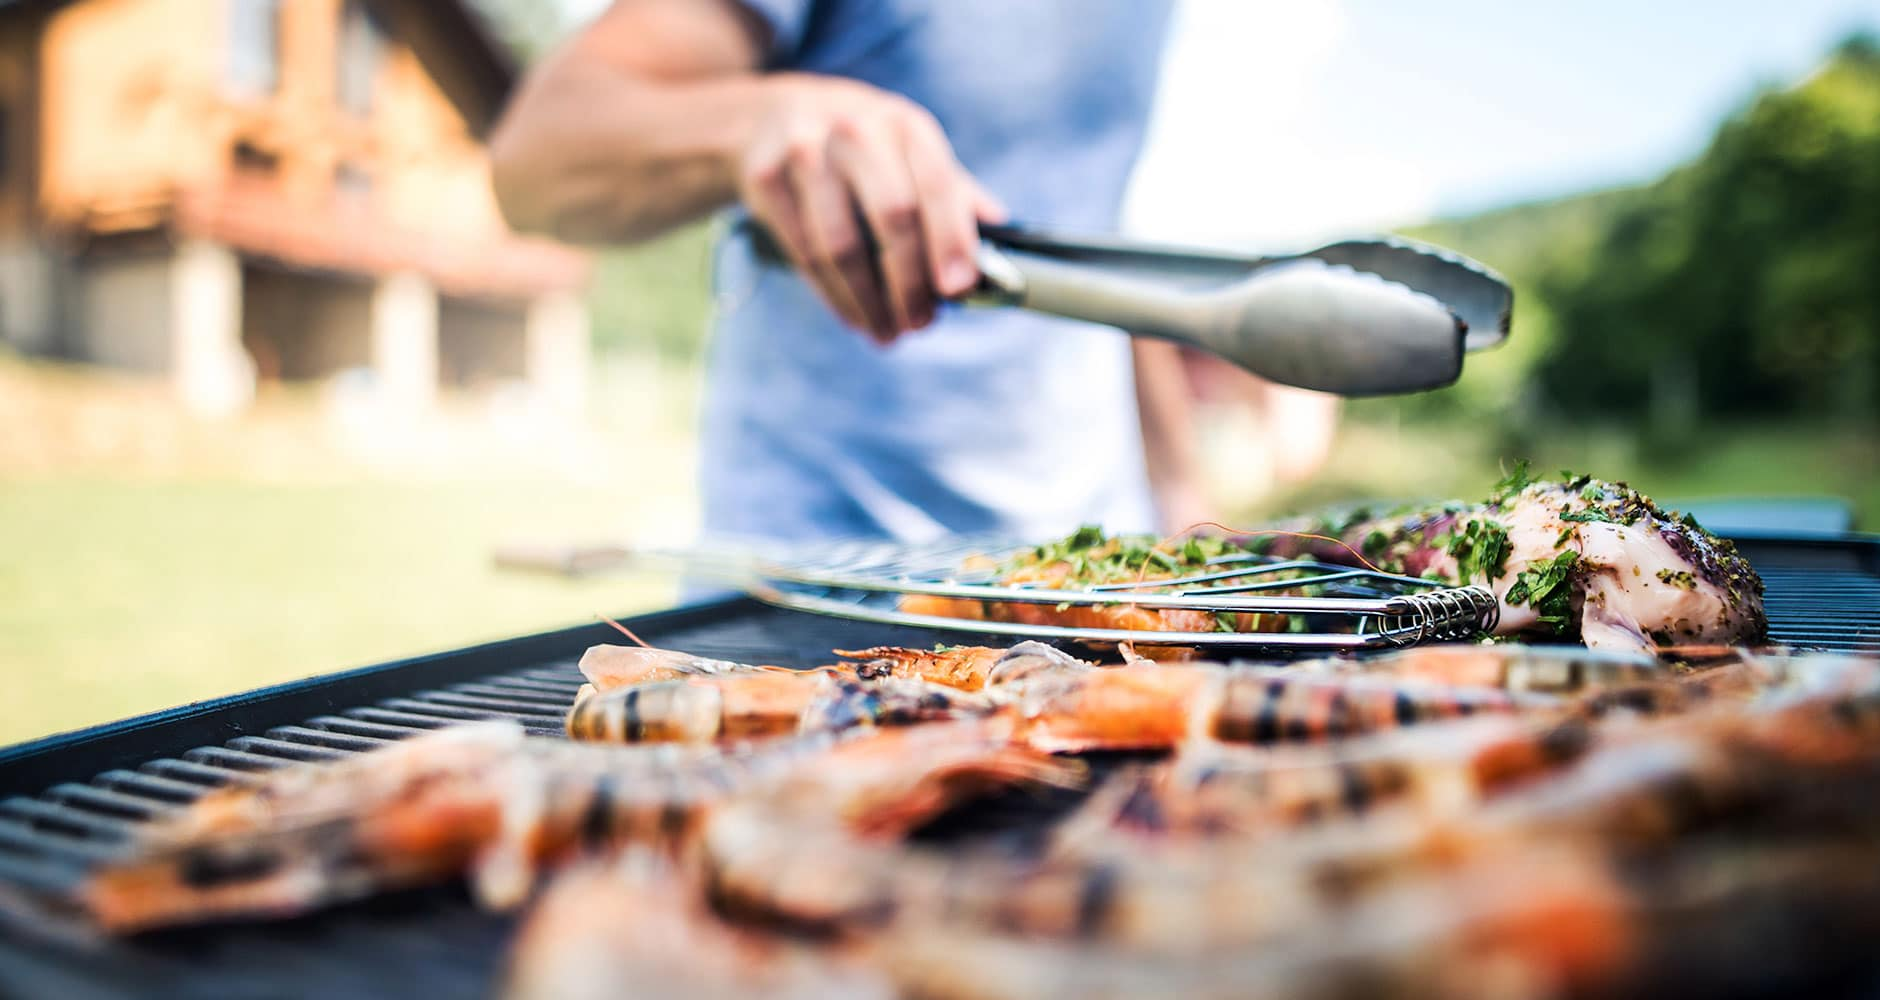 7 Top Tips To Grill Like A Pro - Farmers' Almanac